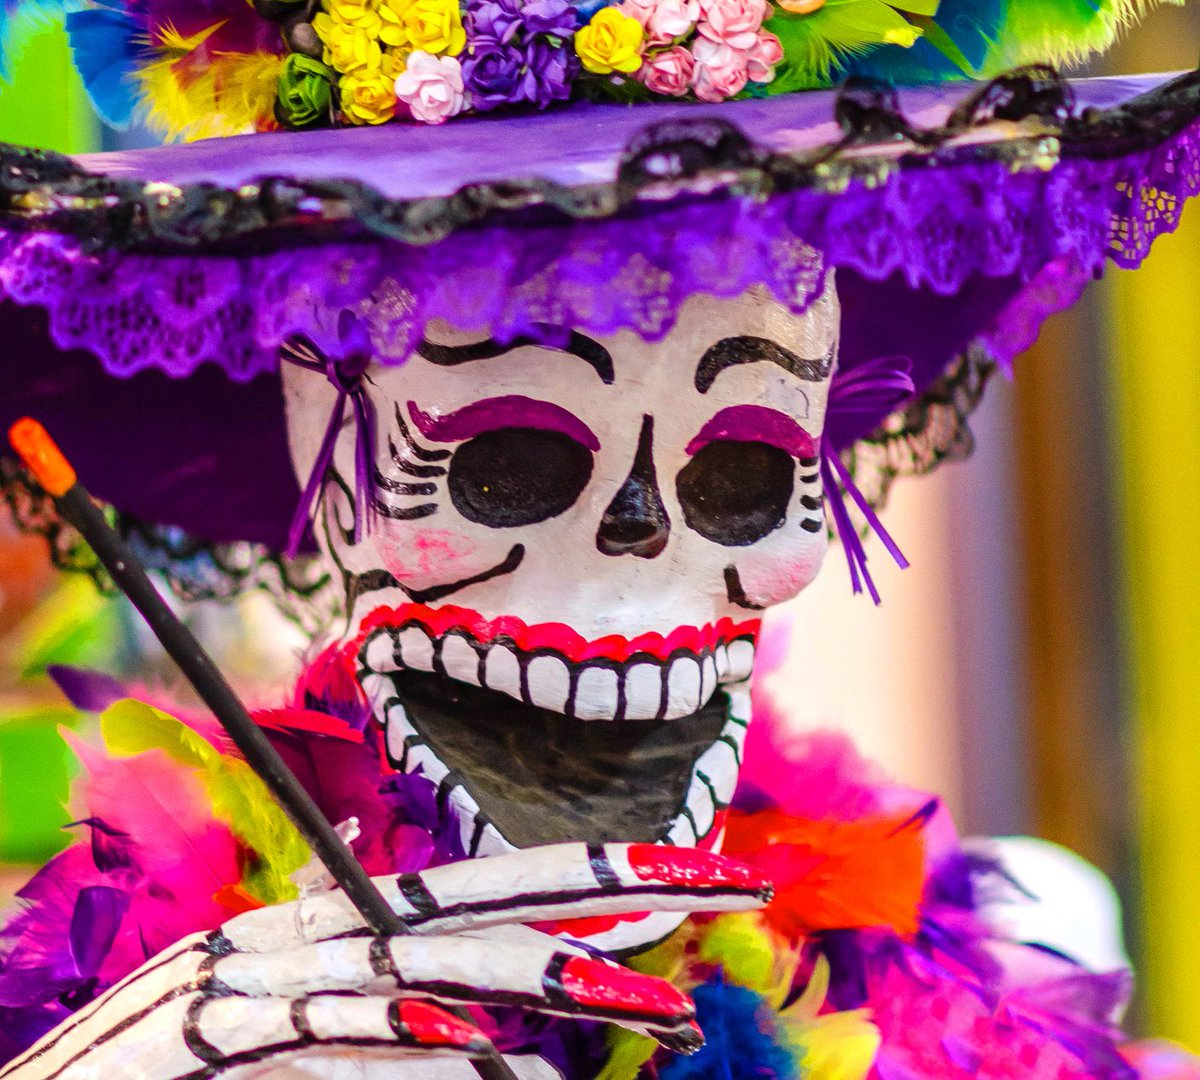 Fancy spending your holiday with this lively fellow? Mexico is just one of five top places we think everyone should experience in their lifetime. Read on for four more - https://t.co/Qm3uiYN2MO #holidays #holidayswithadifference #somewheredifferent https://t.co/PCGgBA2J1e